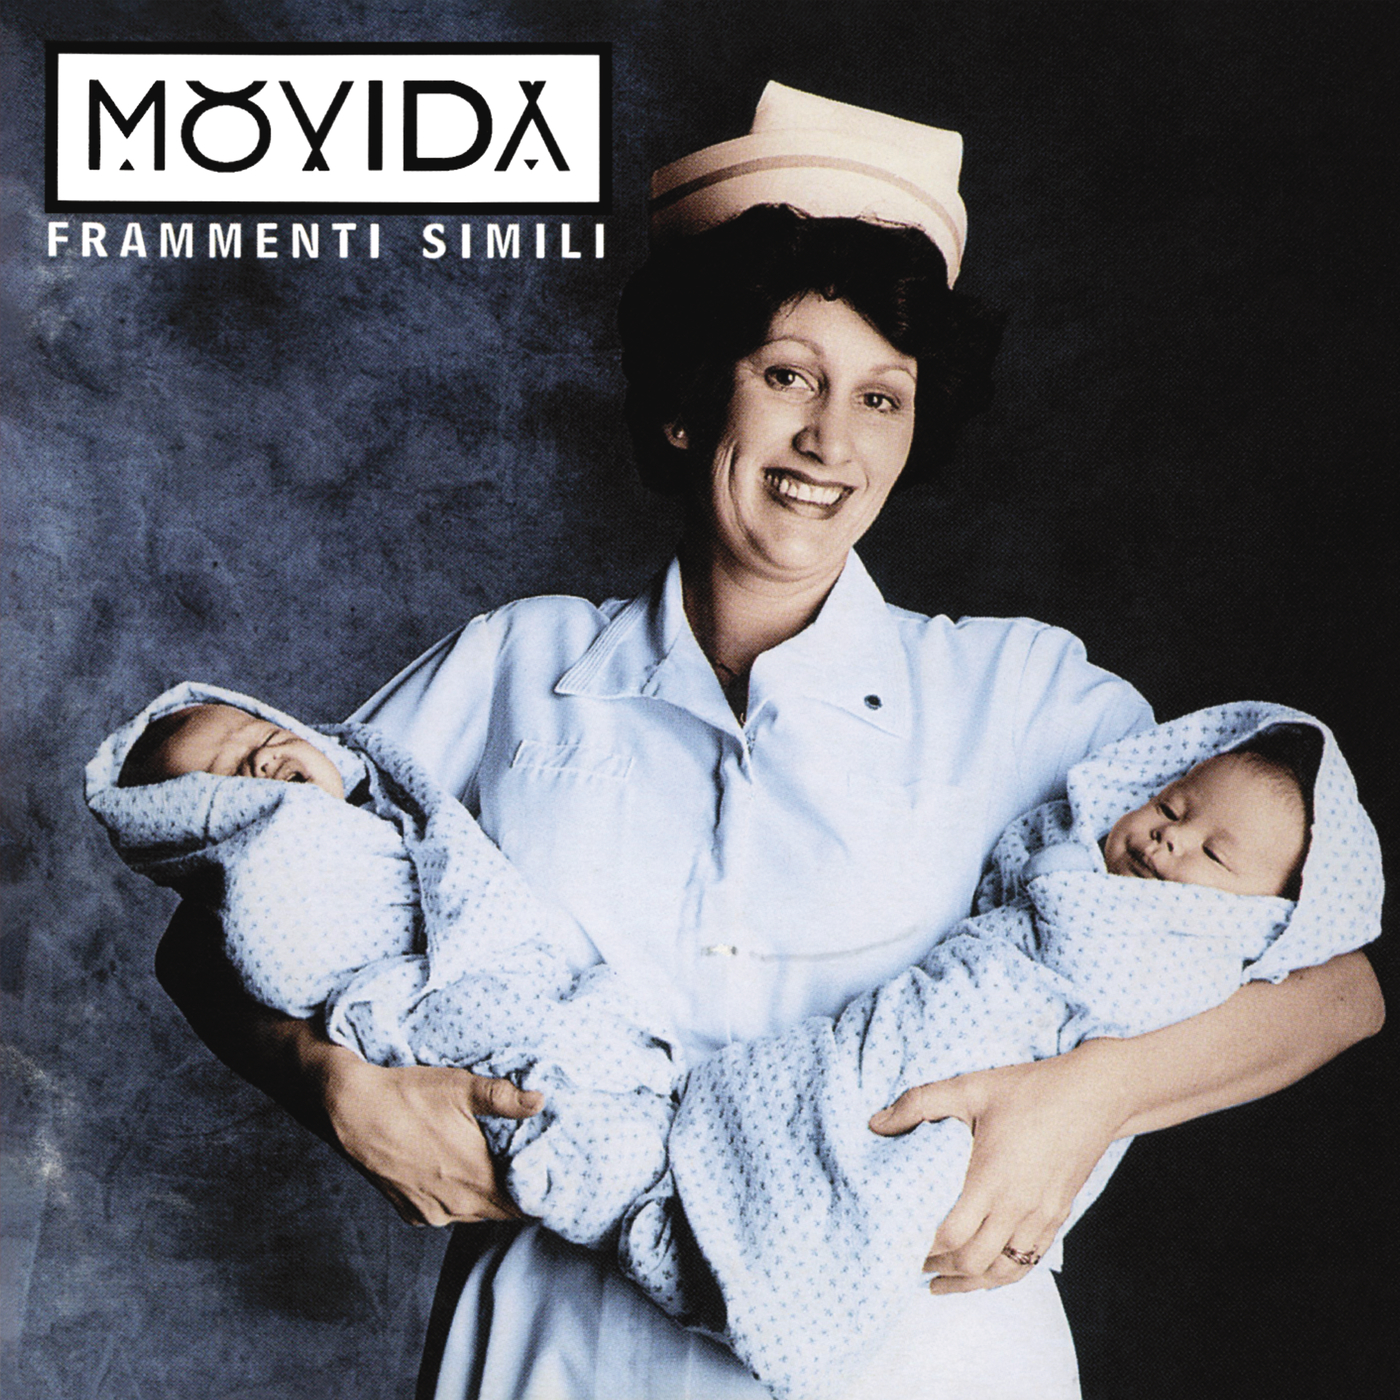 Frammenti simili - Movida